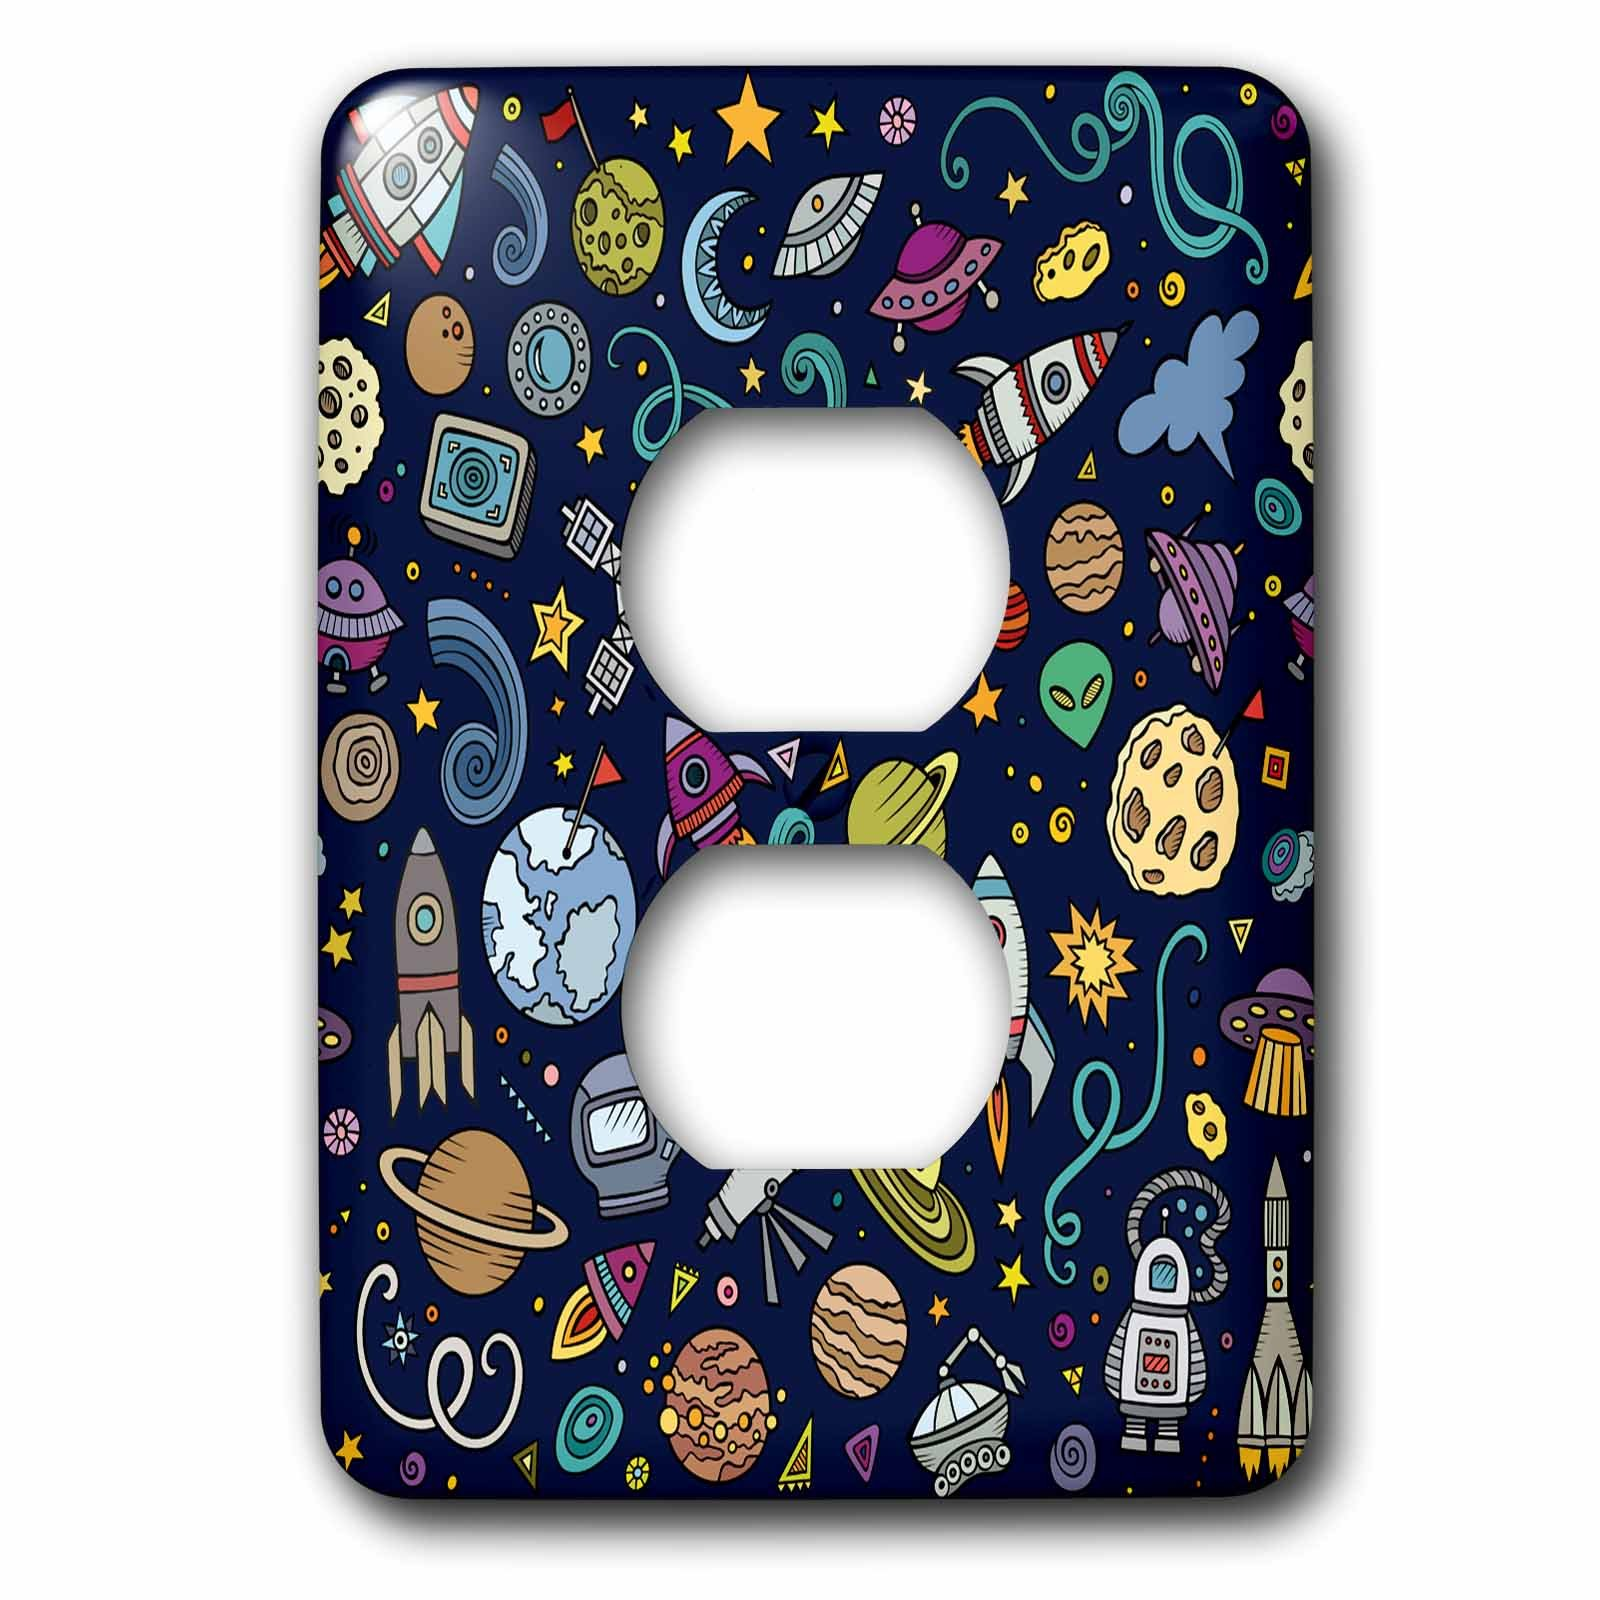 3D Rose lsp_251750_6 Cartoon Space Explorer Birthday Kids Theme Spaceship Astronaut 2 Plug Outlet Cover